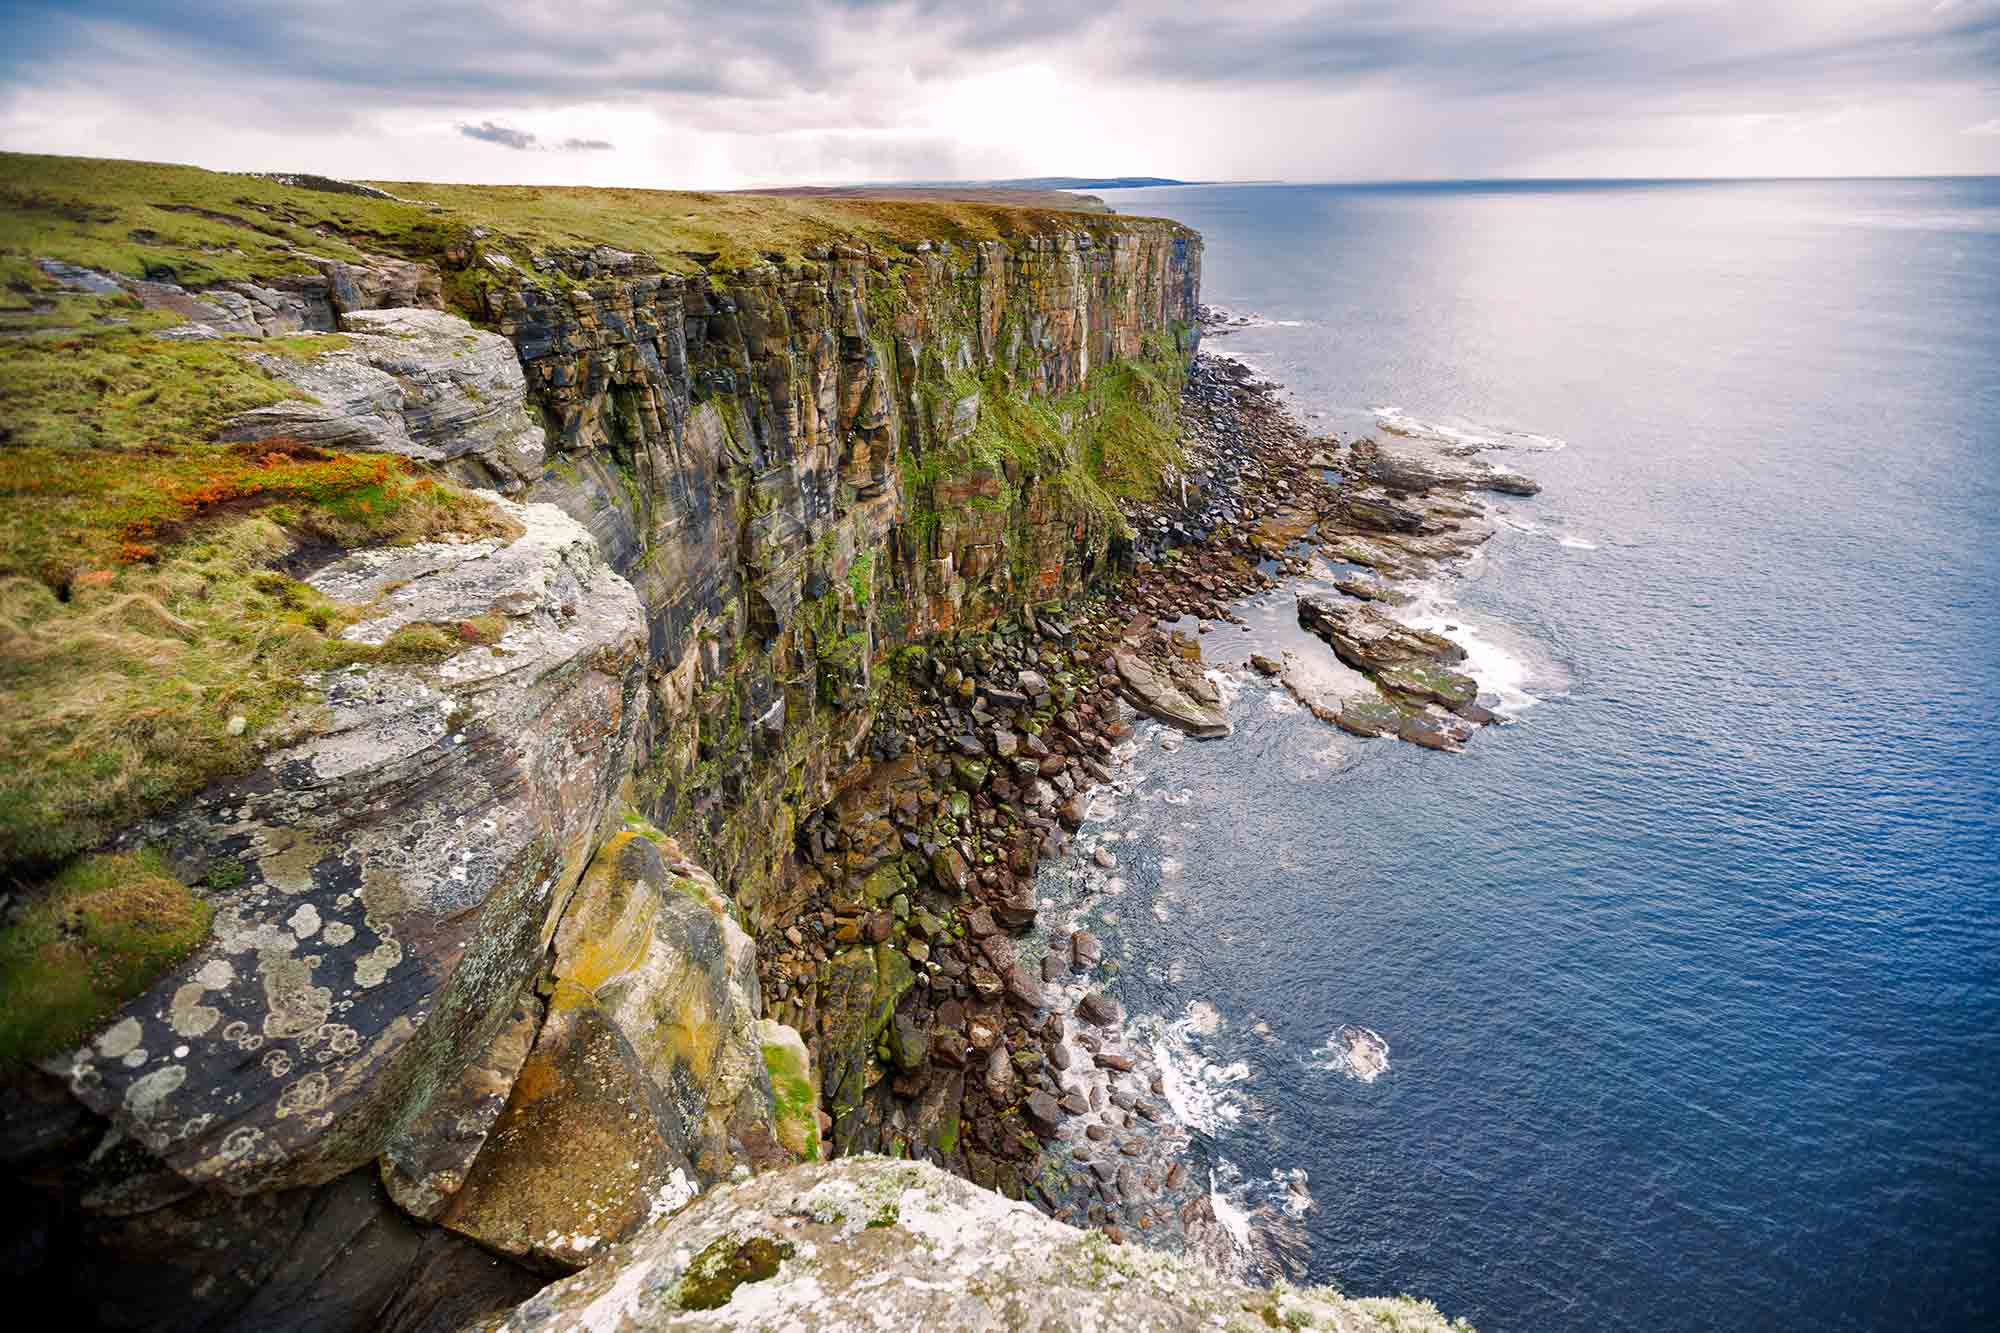 isle-of-skye-coast-cliff-scotland-1